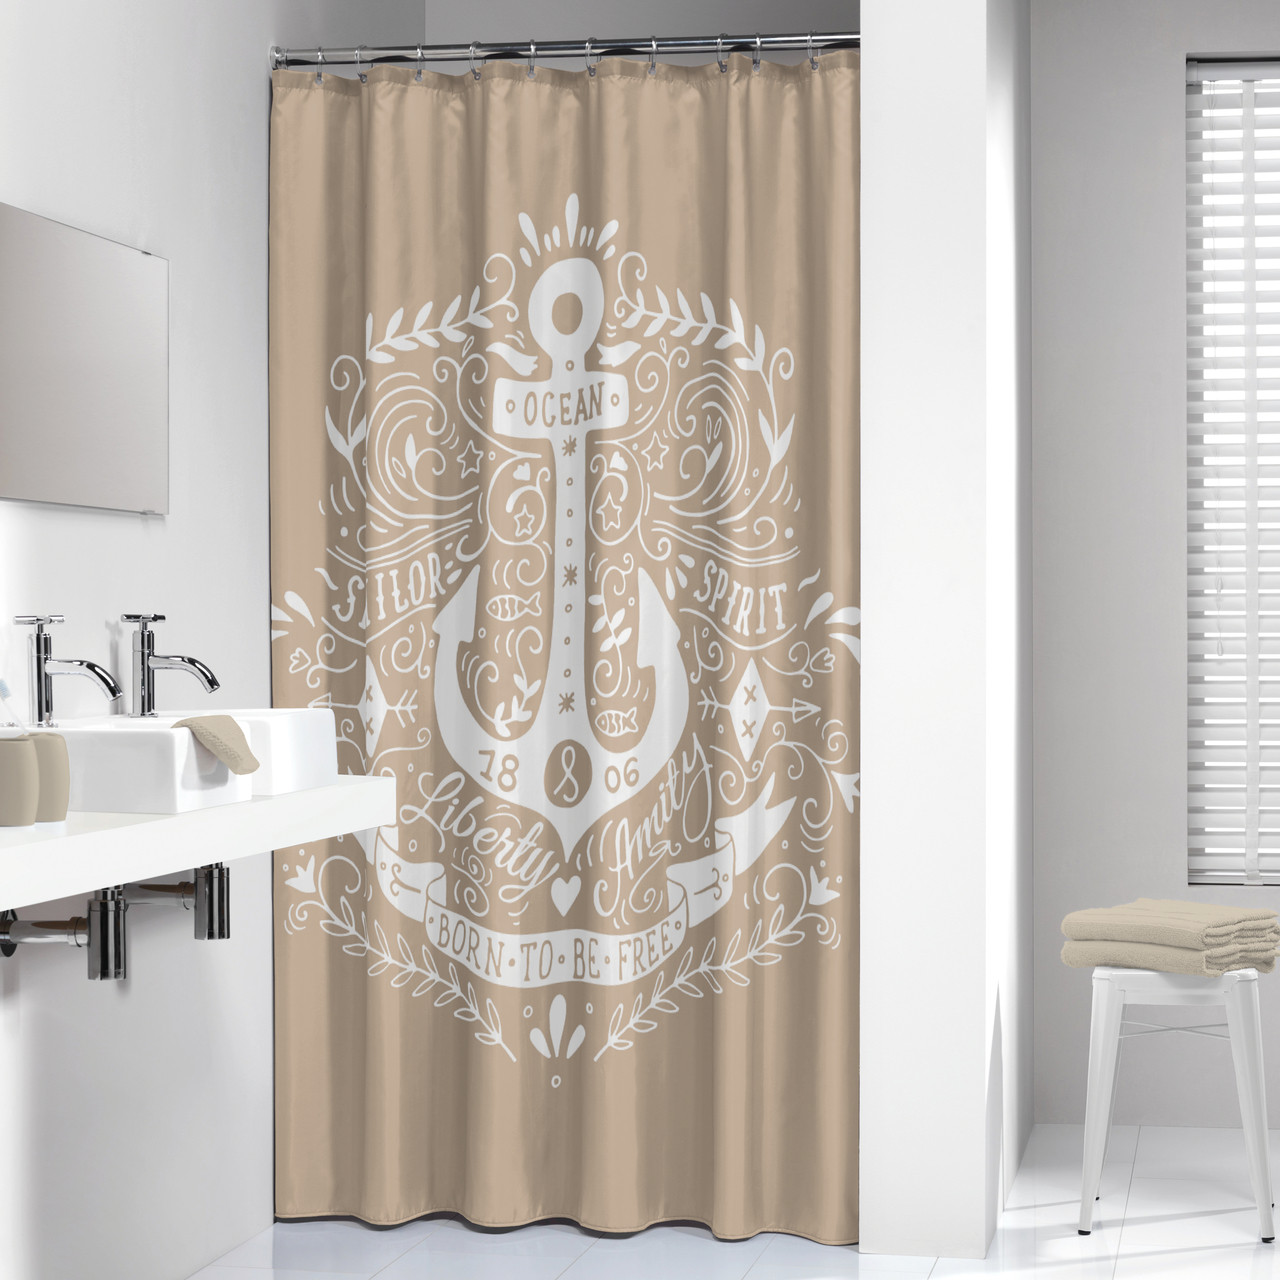 Superieur Extra Long Shower Curtain 72 X 78 Inch Sealskin Anchor Beige And White  Fabric